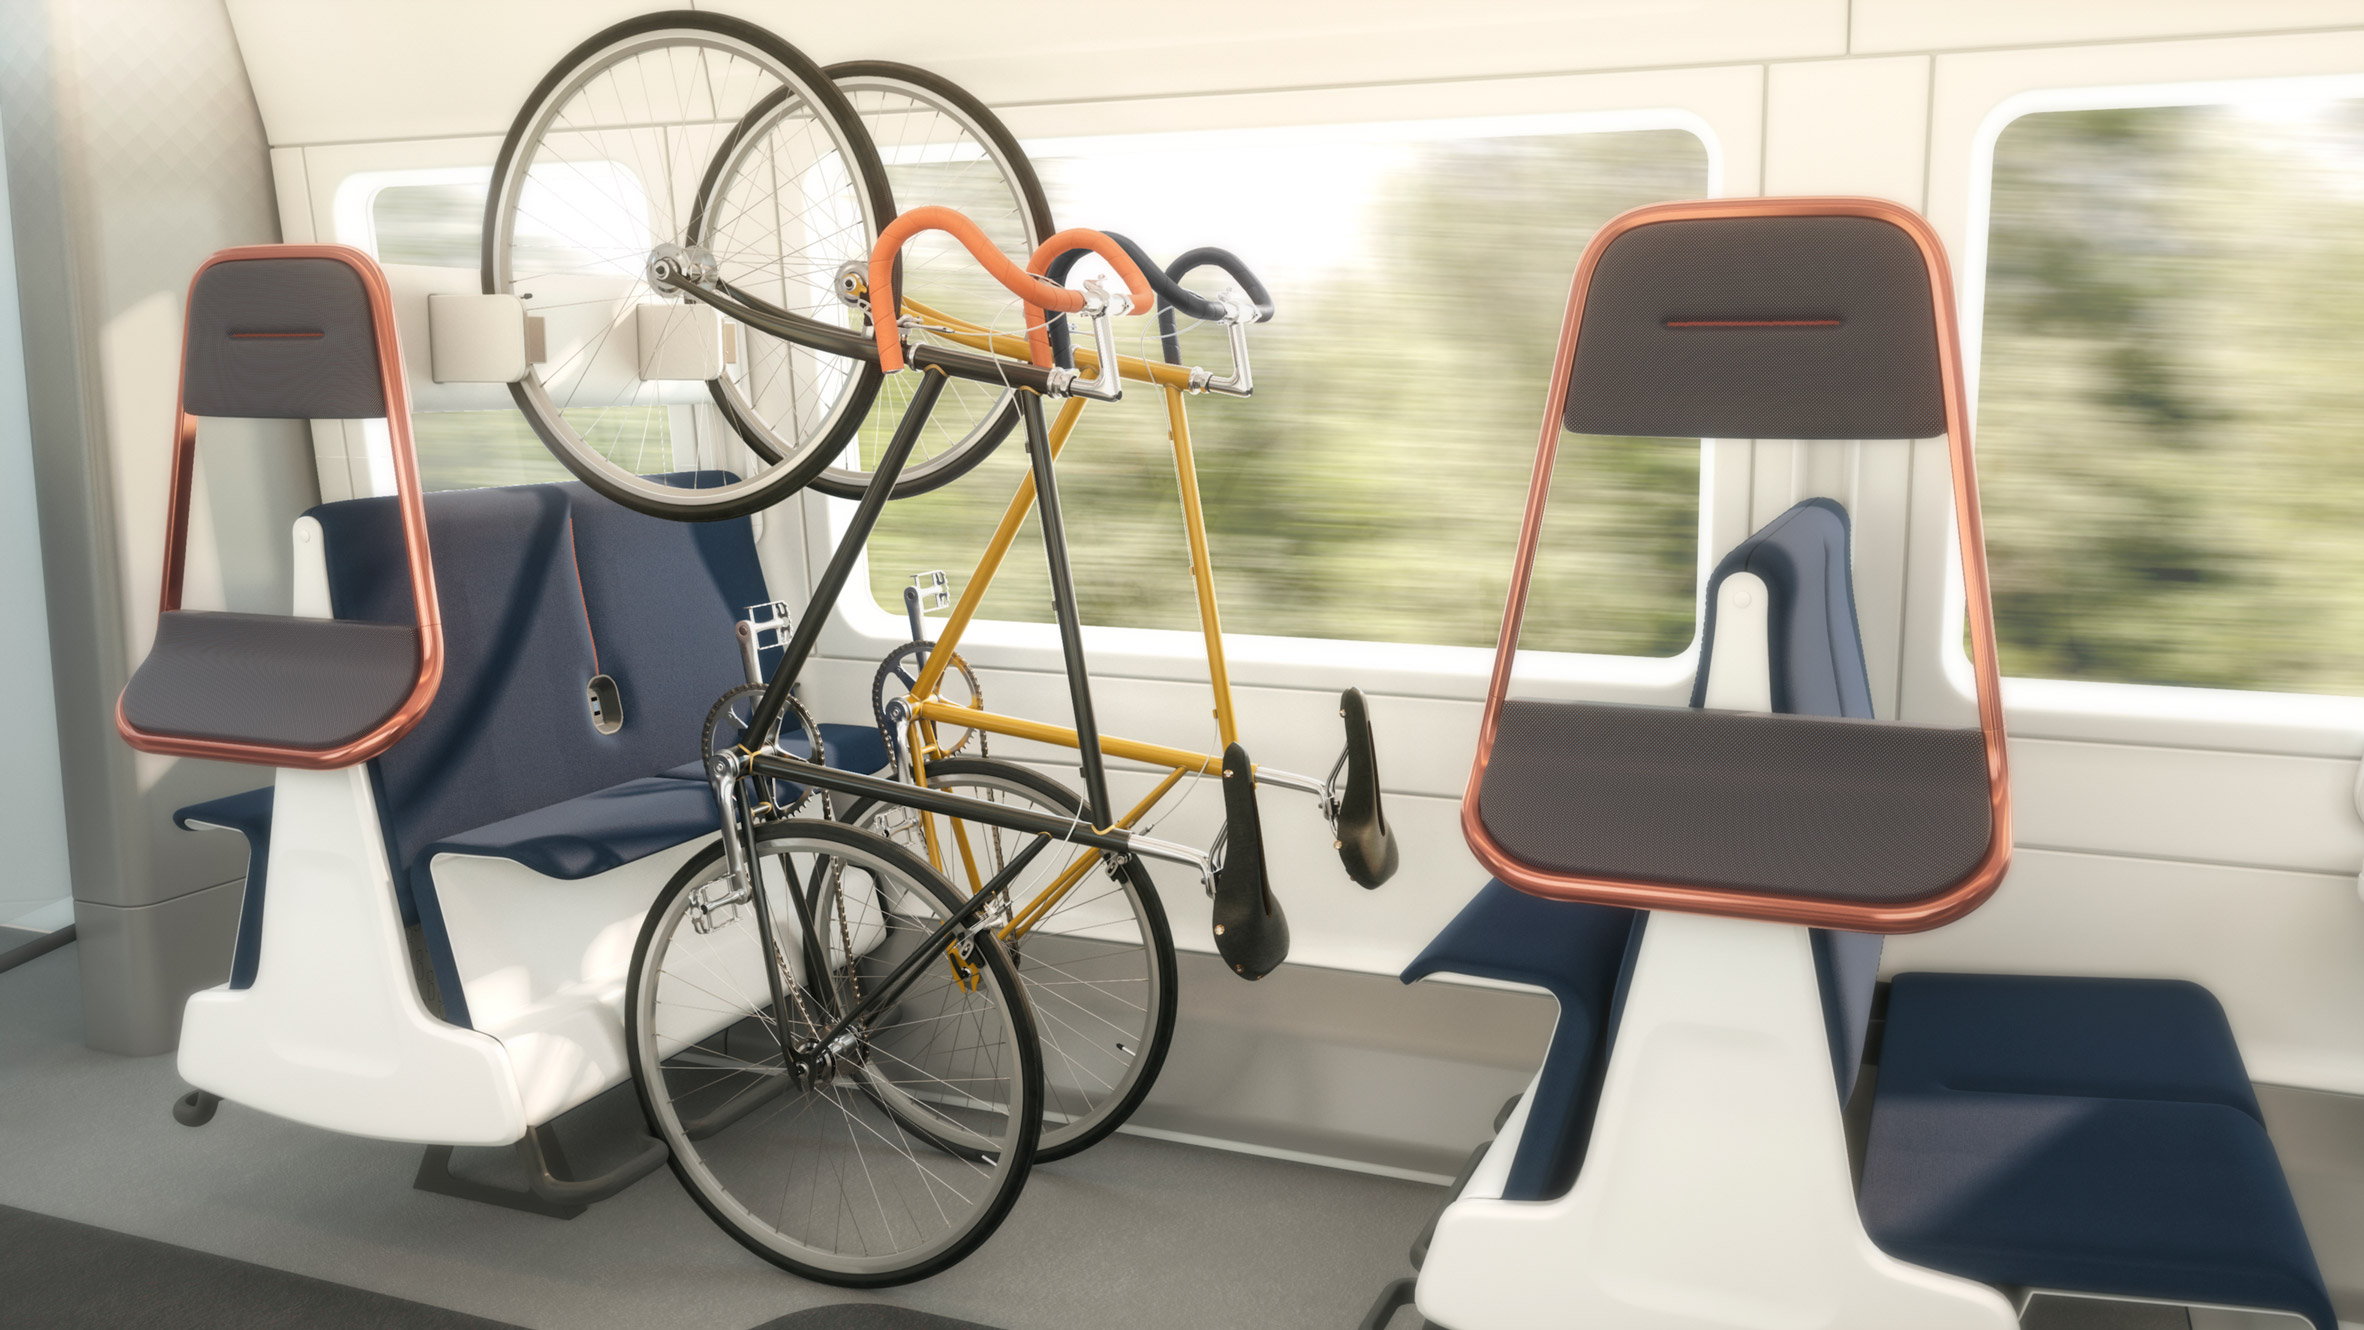 Expanded Bike Storage on Trains to Promote Social Distancing